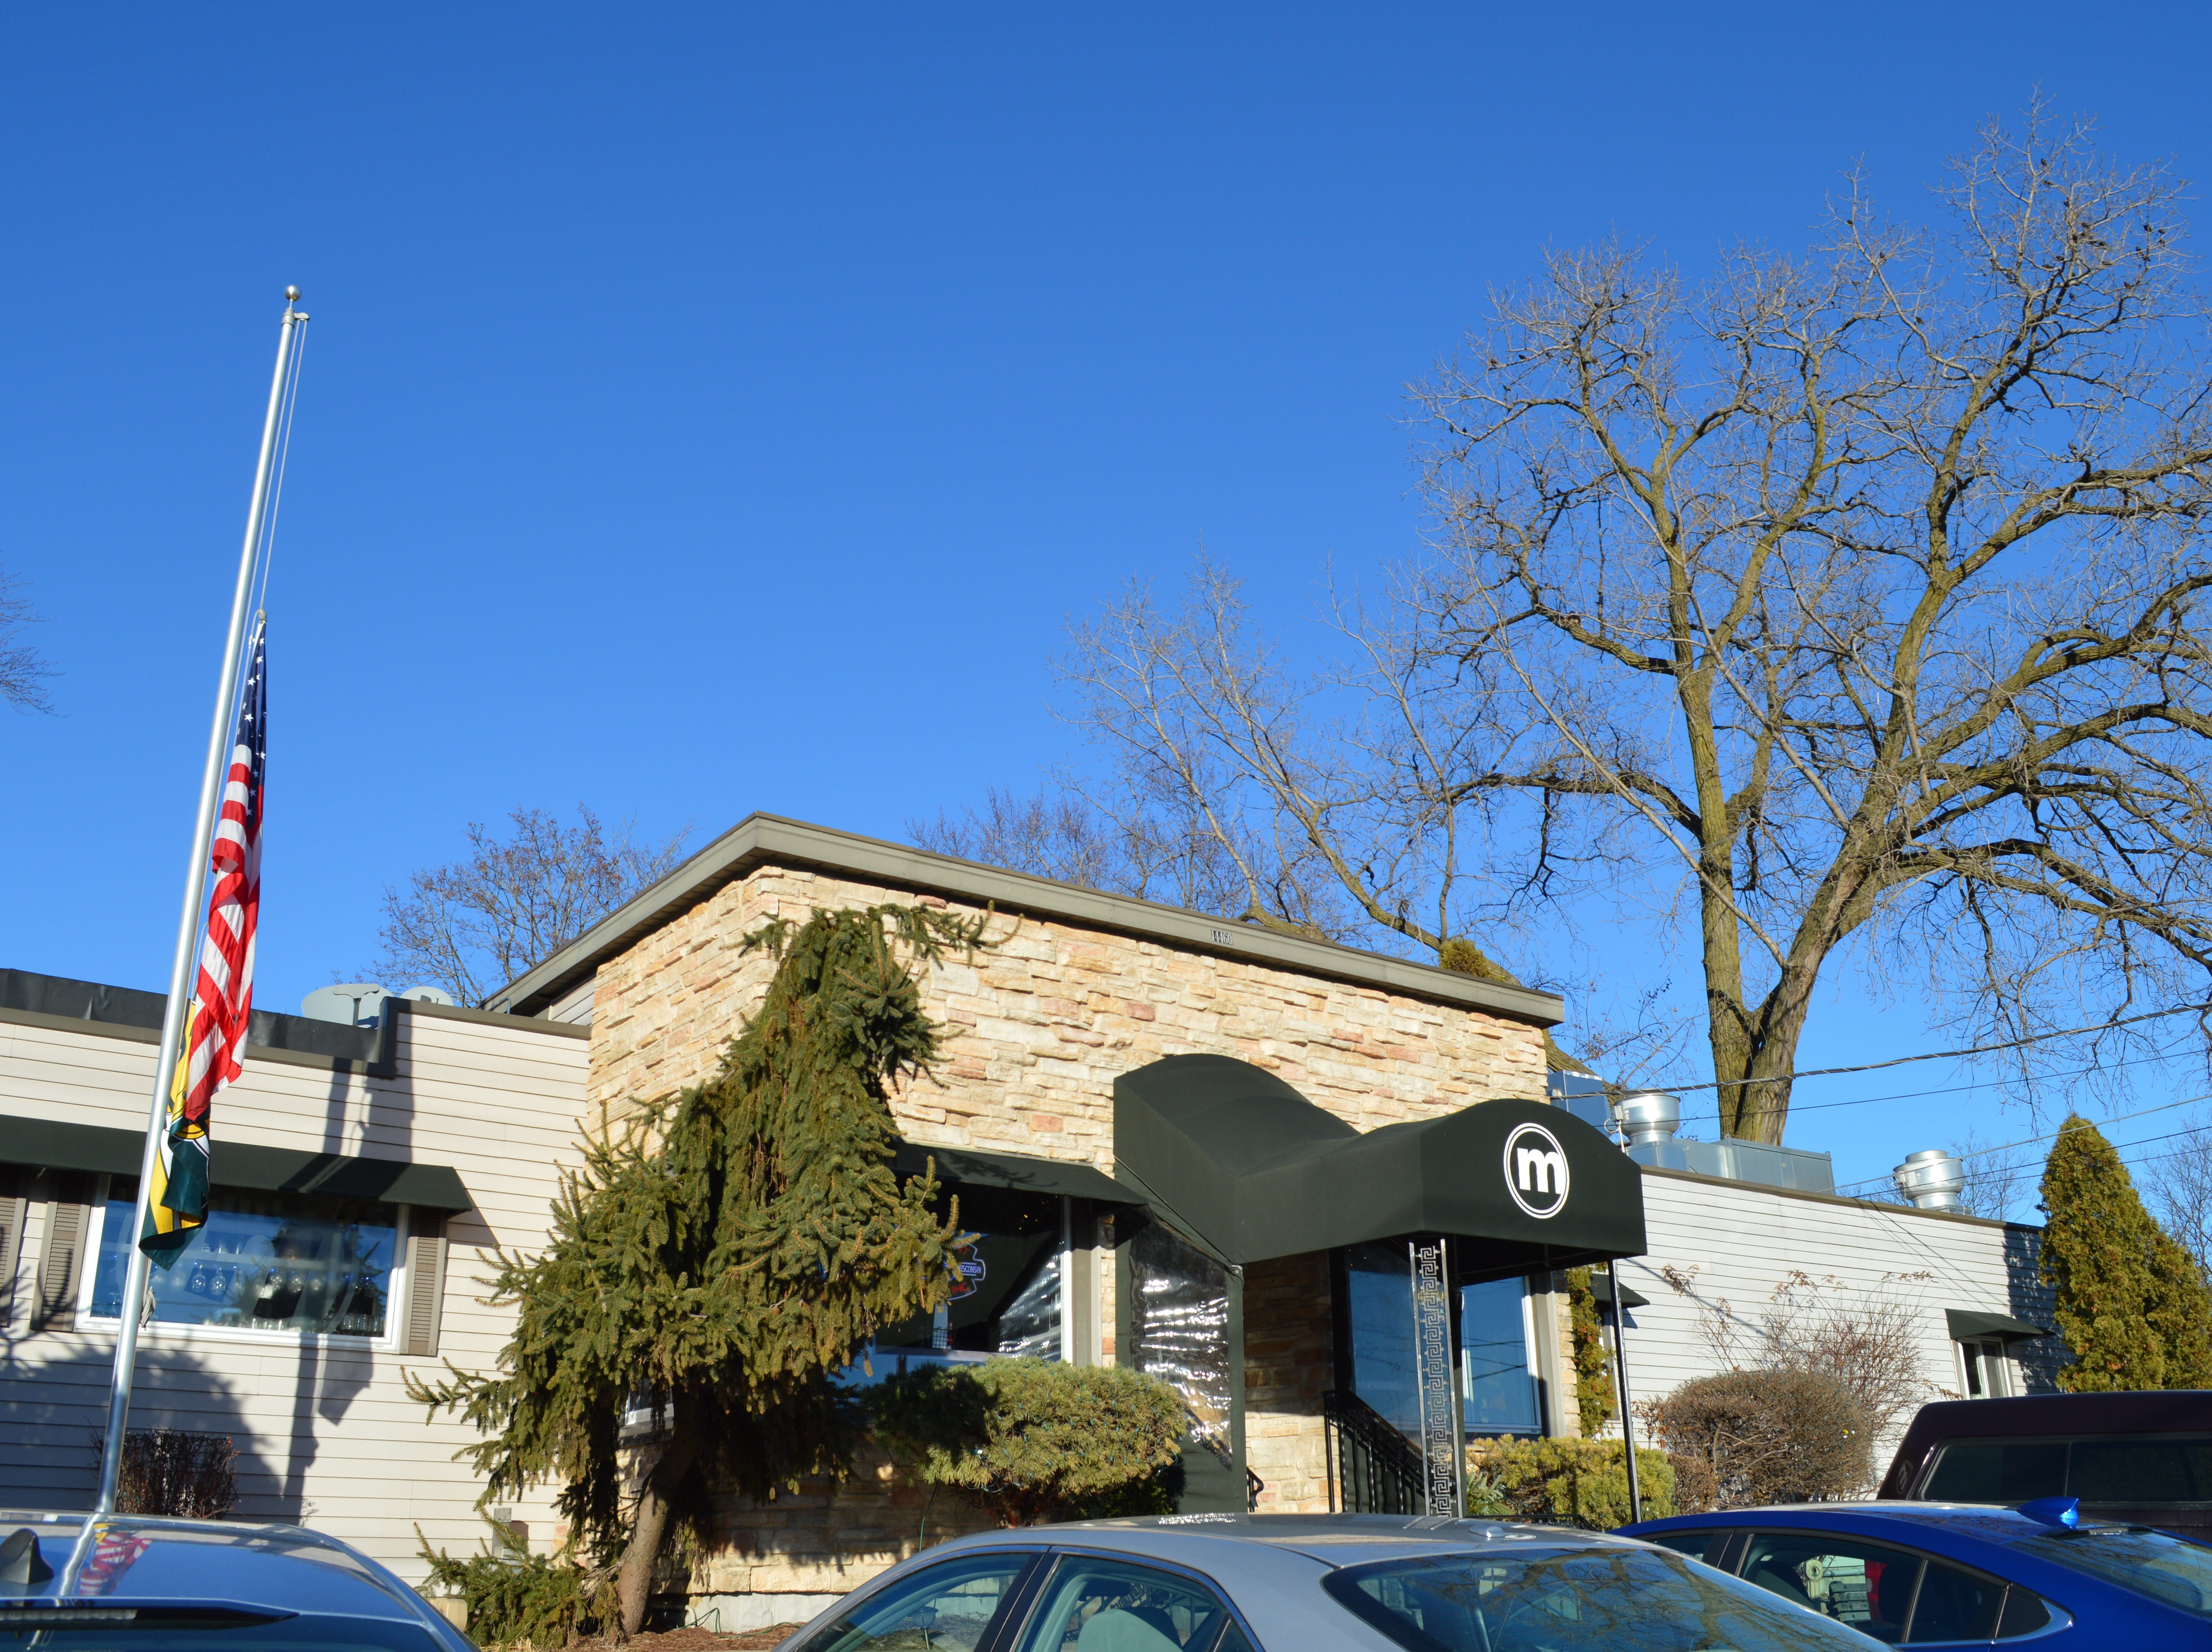 Matty's Bar and Grille is located at 14460 W. College Ave., New Berlin.